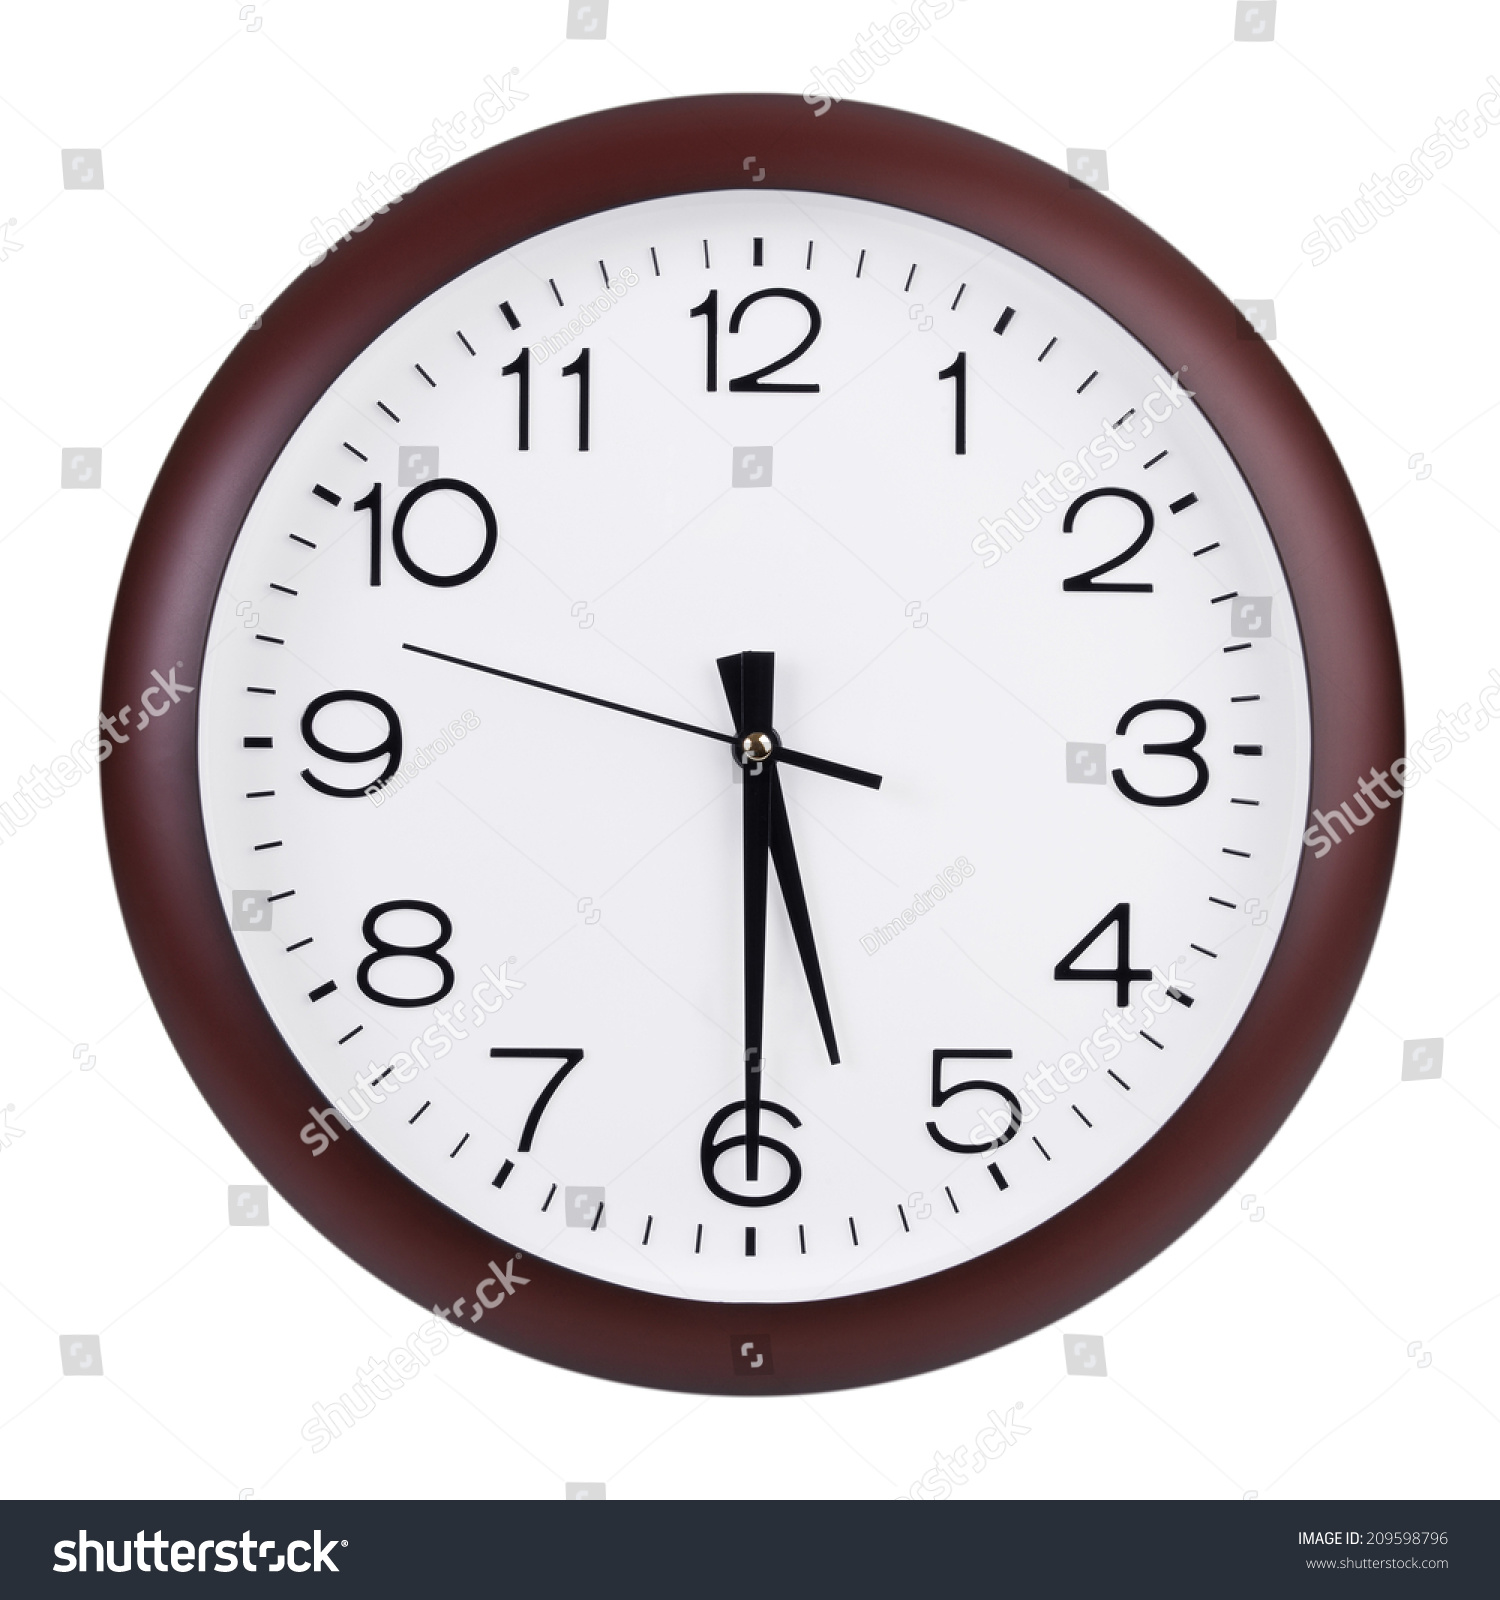 Half Past Five Oclock On Dial Stock Photo